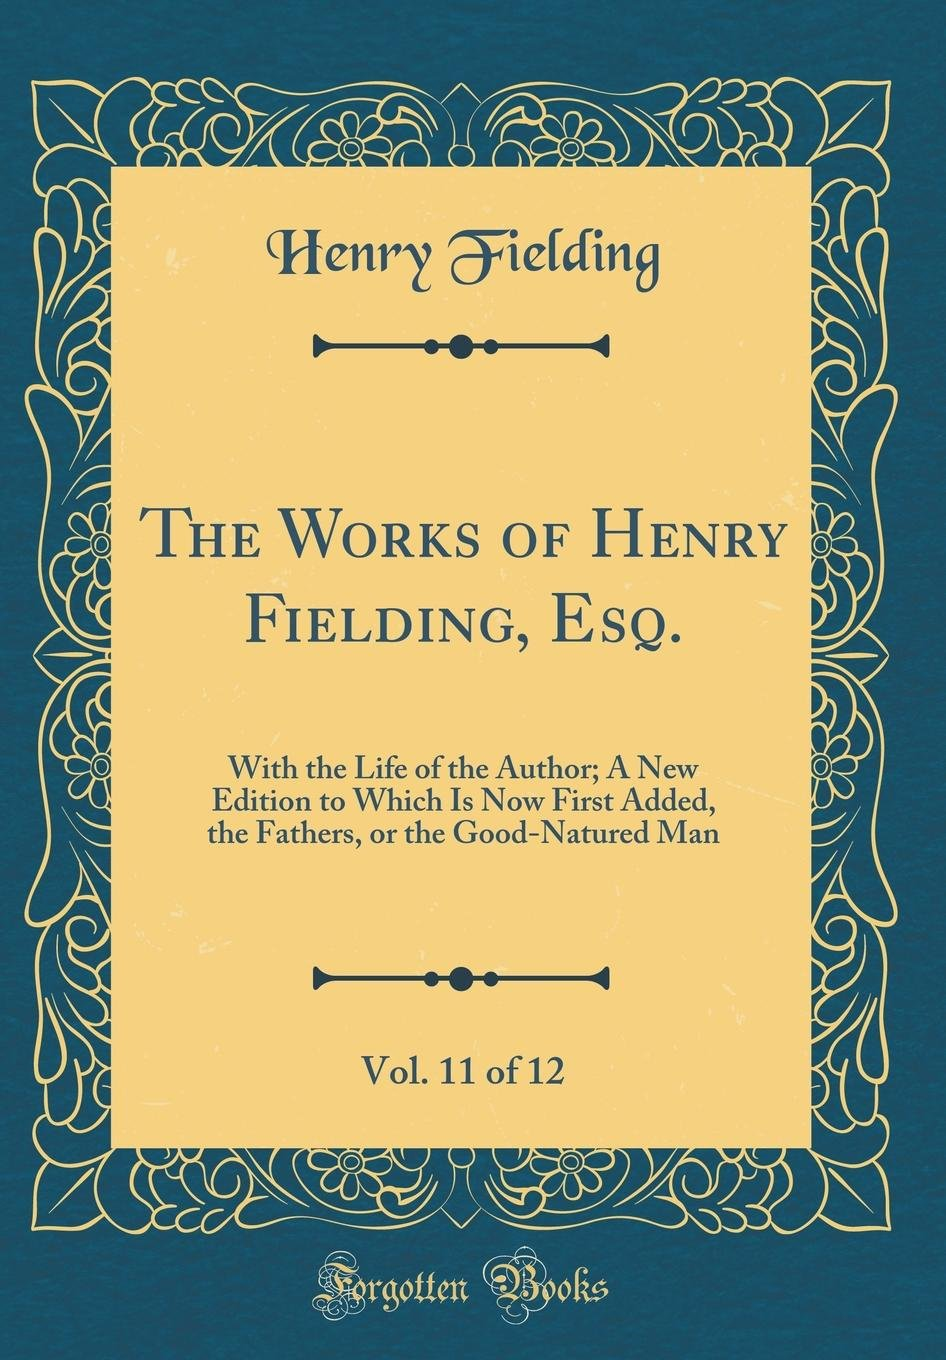 The Works of Henry Fielding, Esq, Vol. 11 of 12: With the Life of the Author; A New Edition to Which Is Now First Added, the Fathers, or the Good-Natured Man (Classic Reprint) pdf